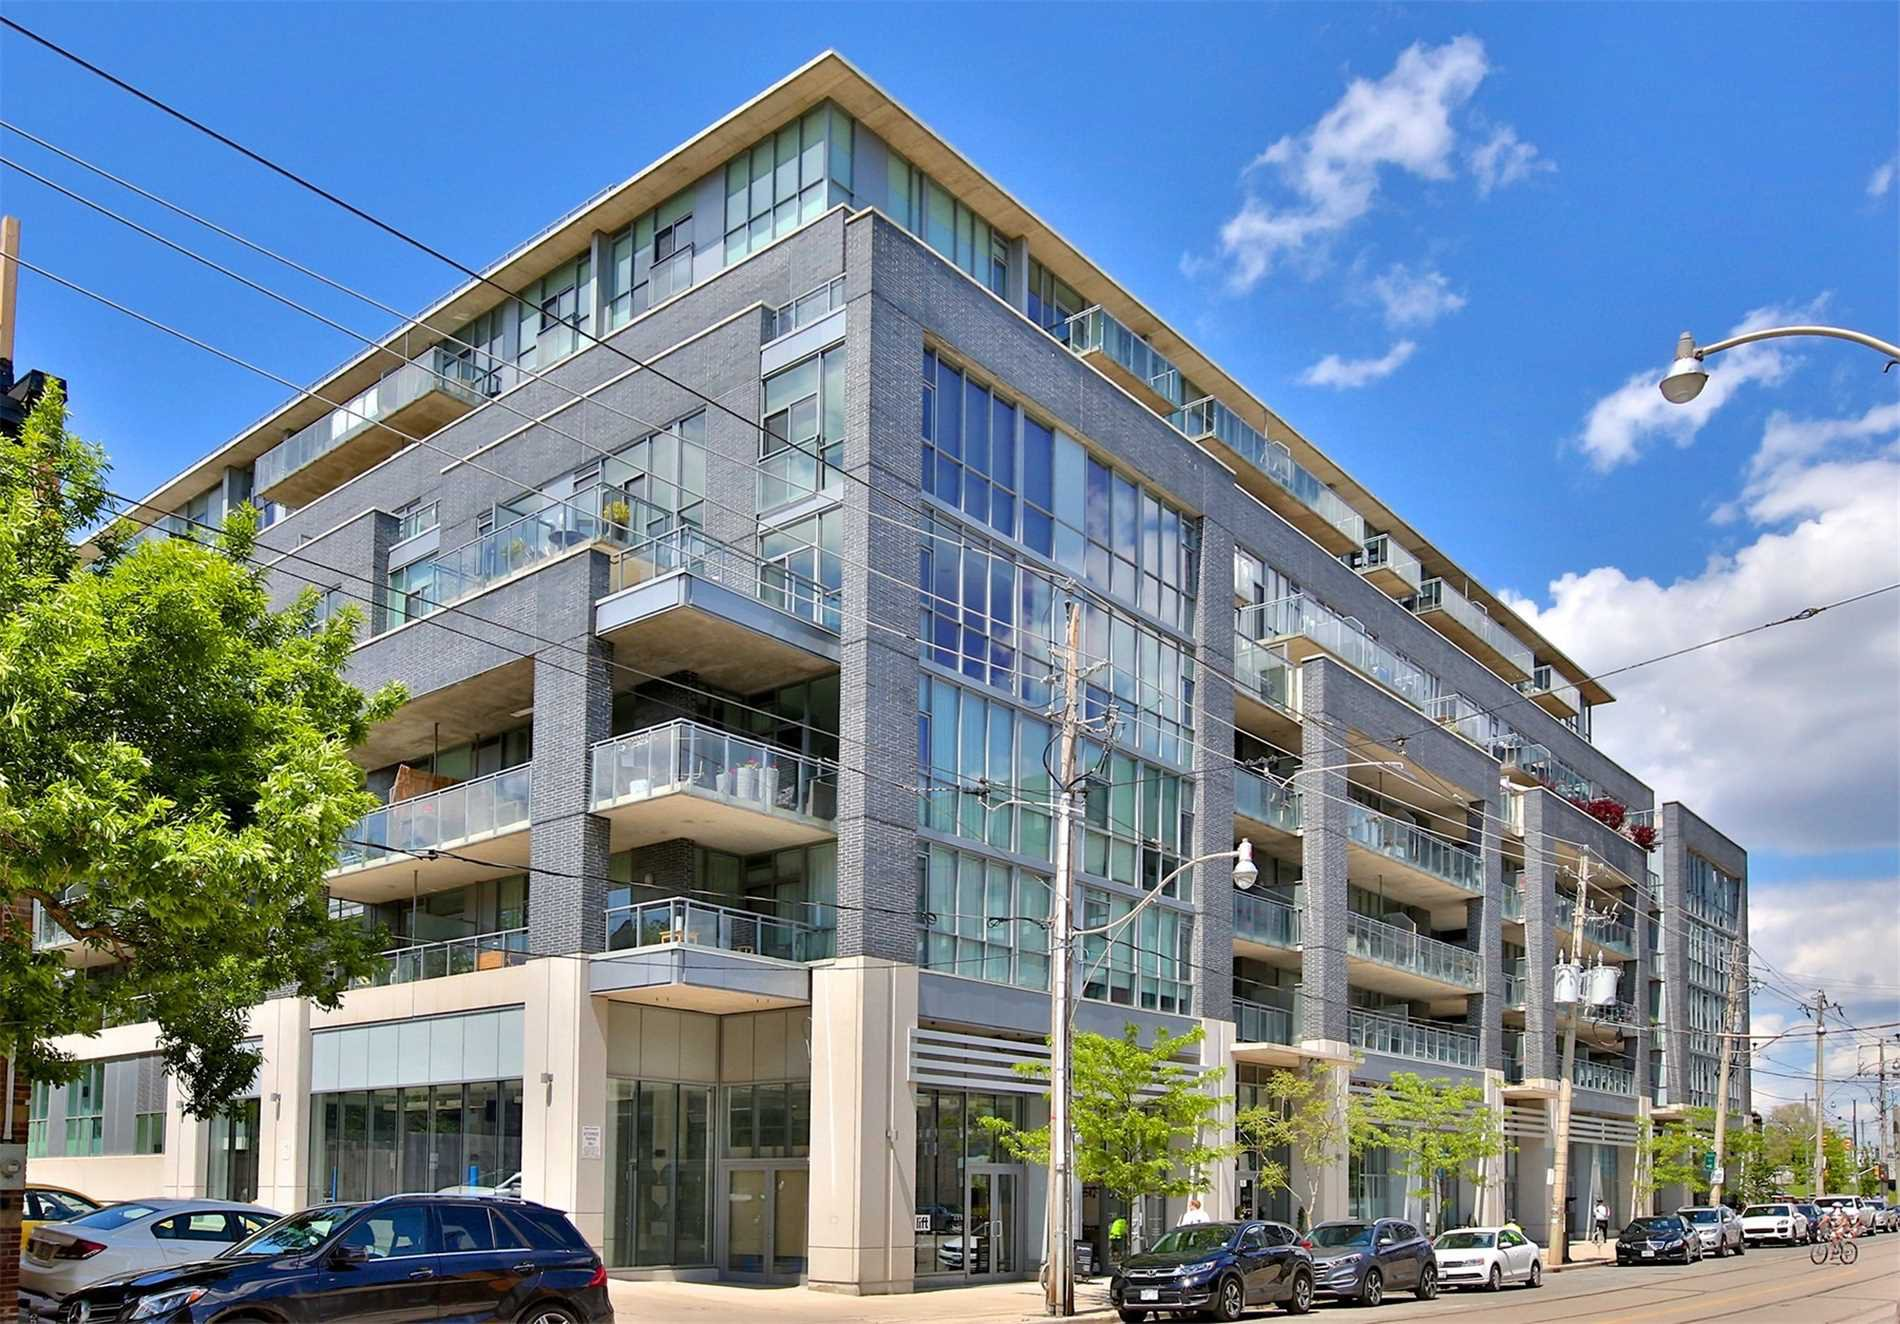 Main Photo: 325 510 E King Street in Toronto: Moss Park Condo for sale (Toronto C08)  : MLS®# C4528106